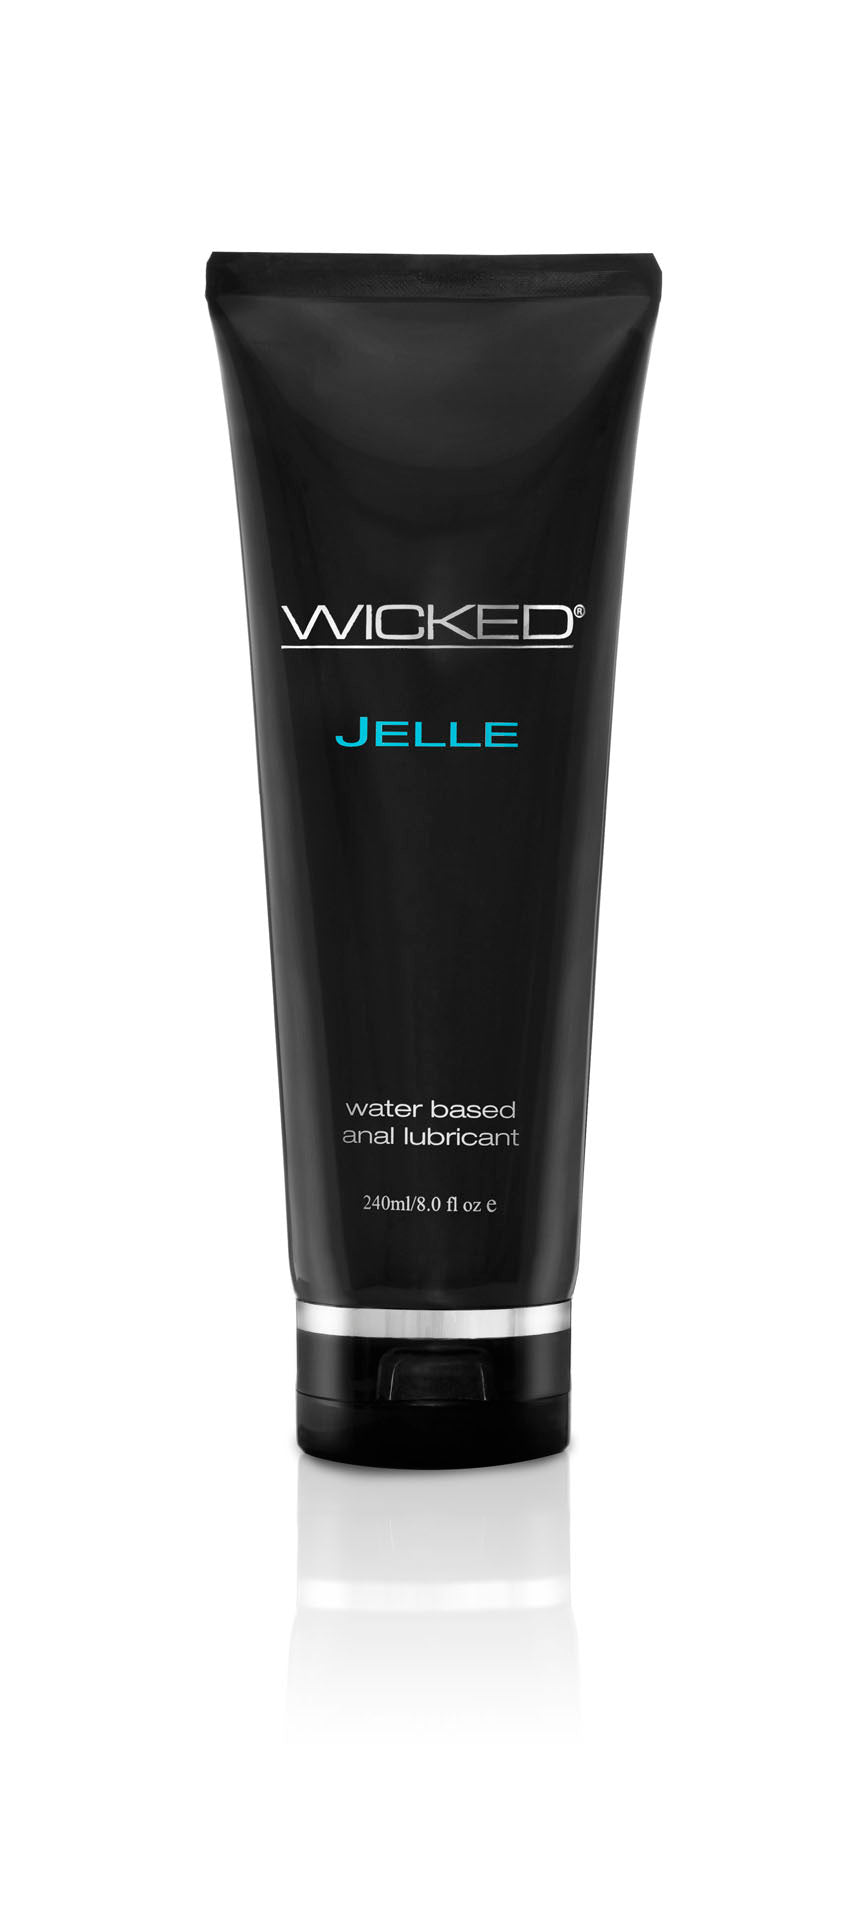 Wicked Jelle Anal Lubricant 8.0 Oz - My sheree and More